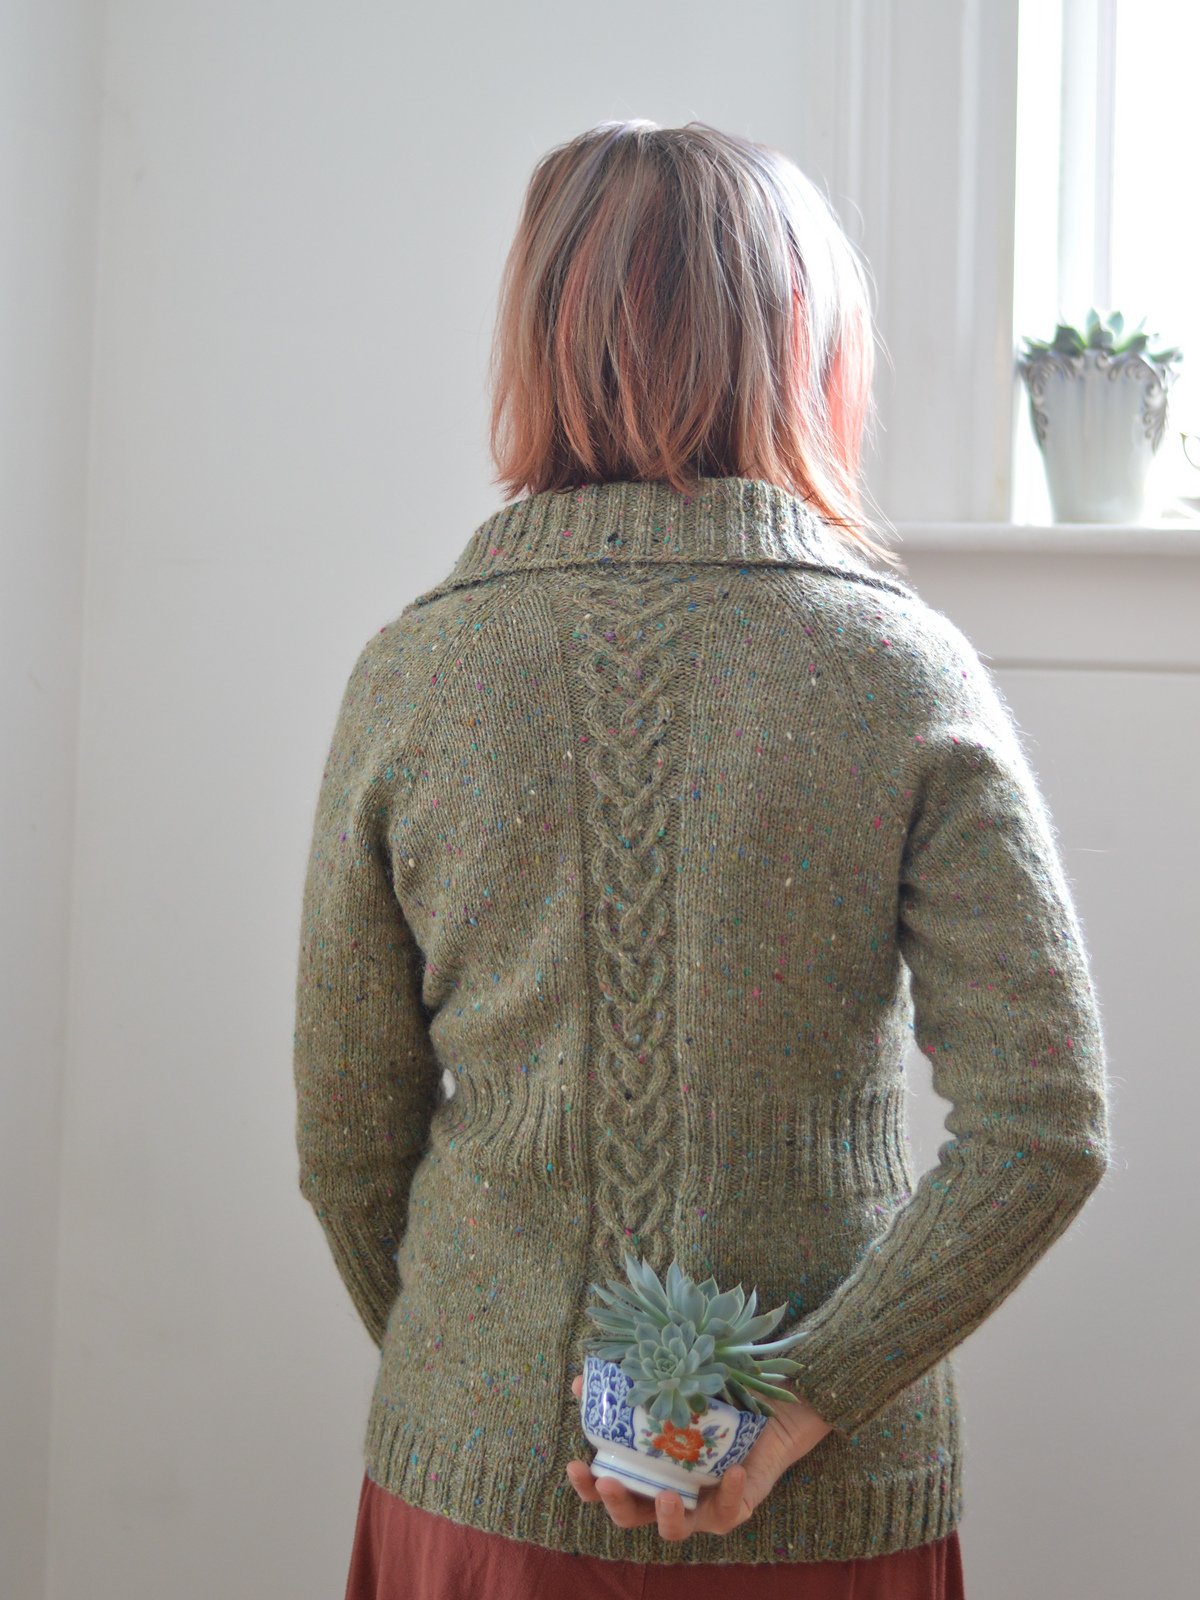 back view of a woman in an olive sweater with cable details